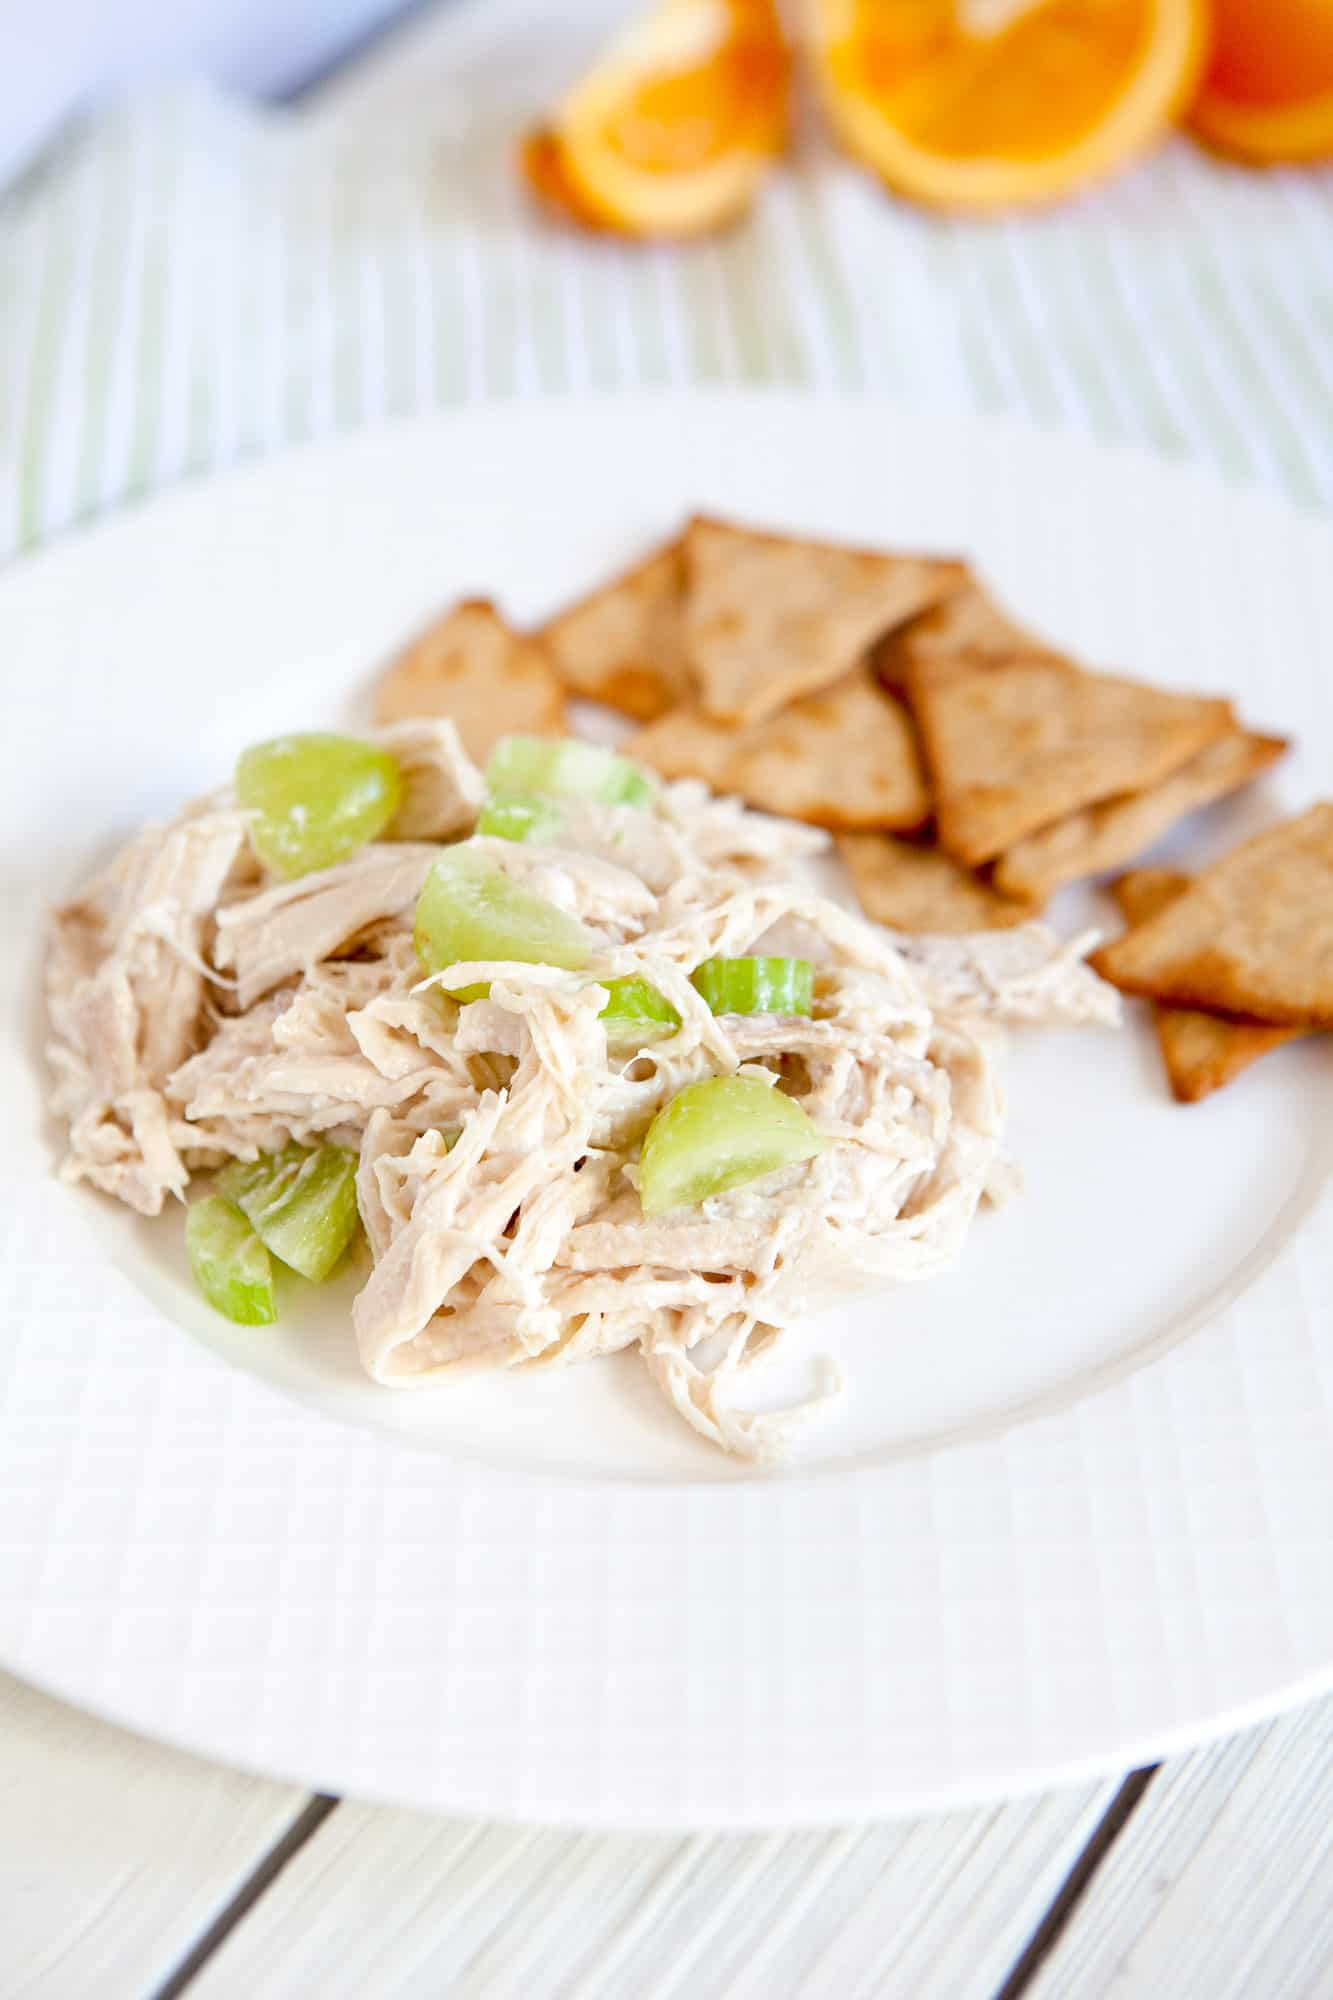 chicken salad with crackers on white plate